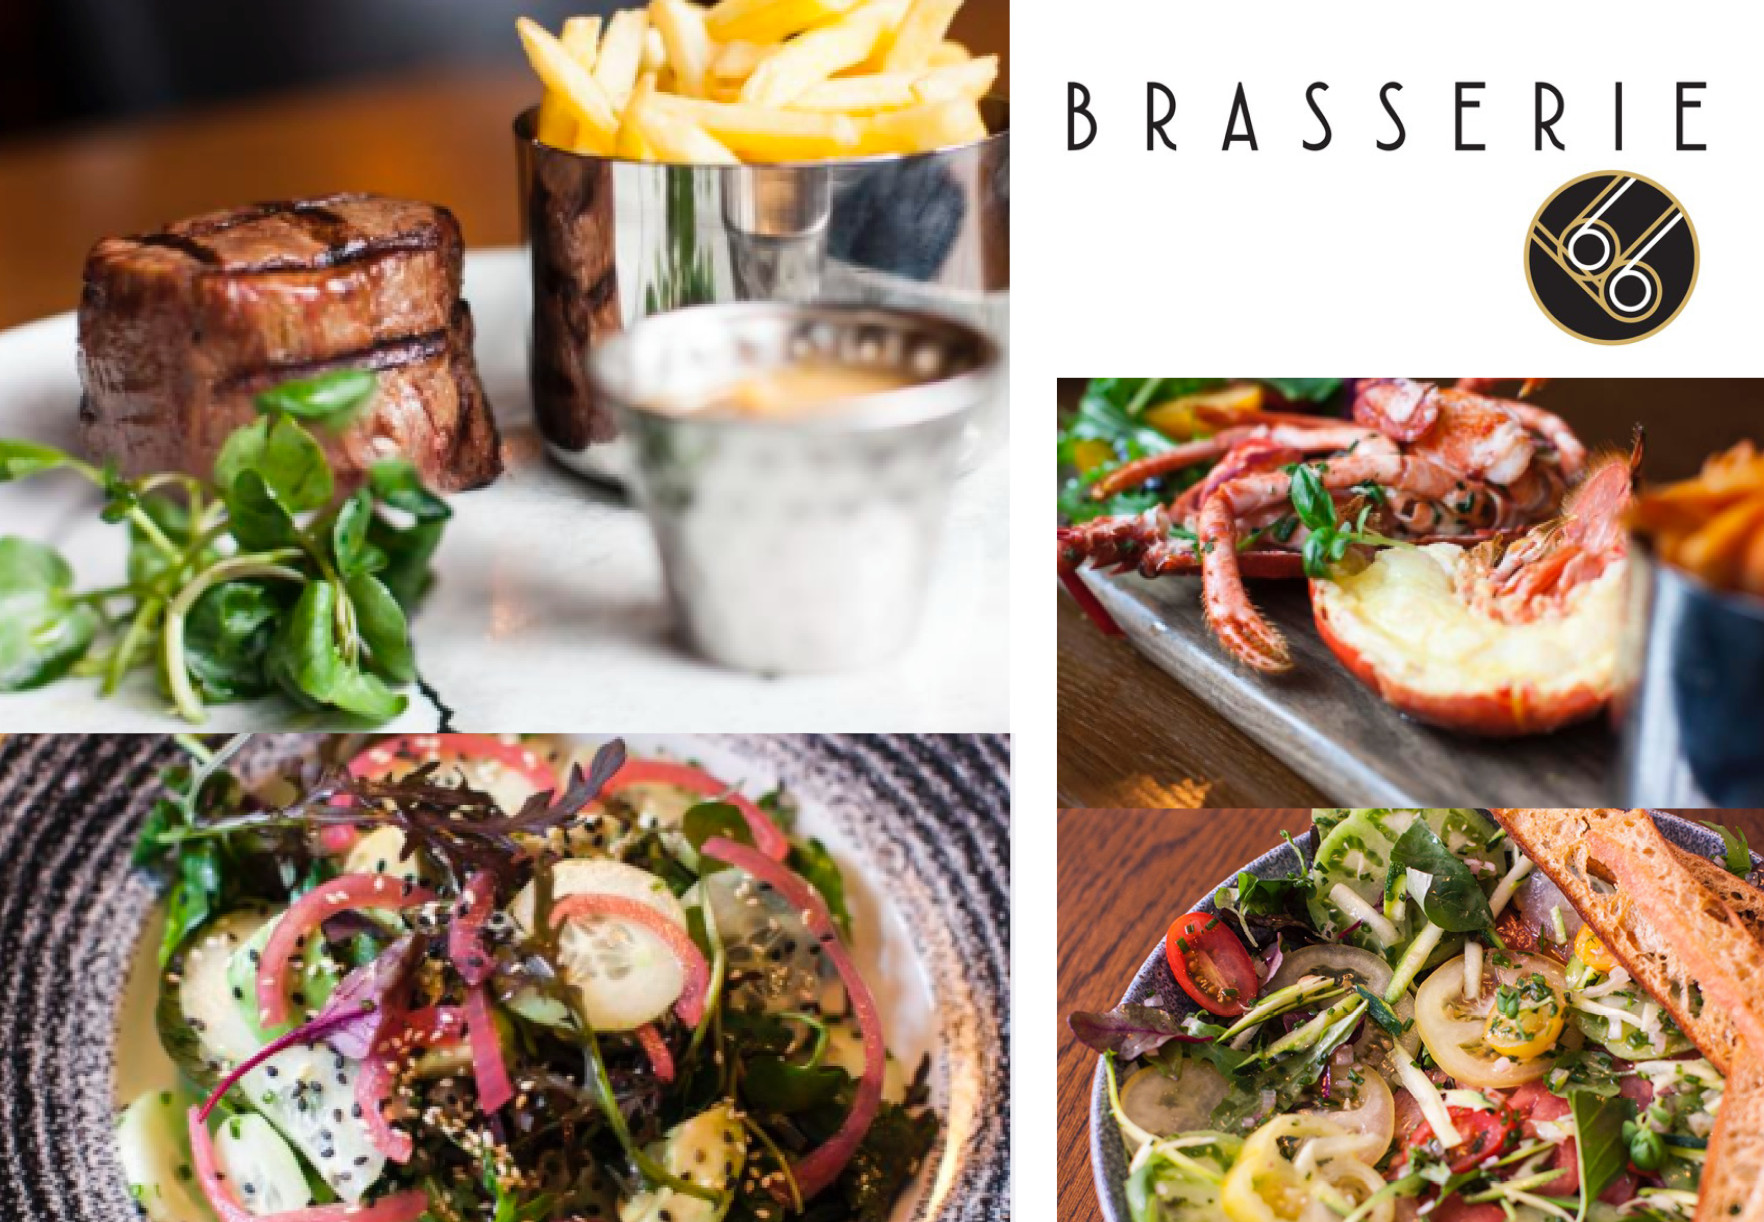 Thu / Friday Dinner club @ Brasserie 66